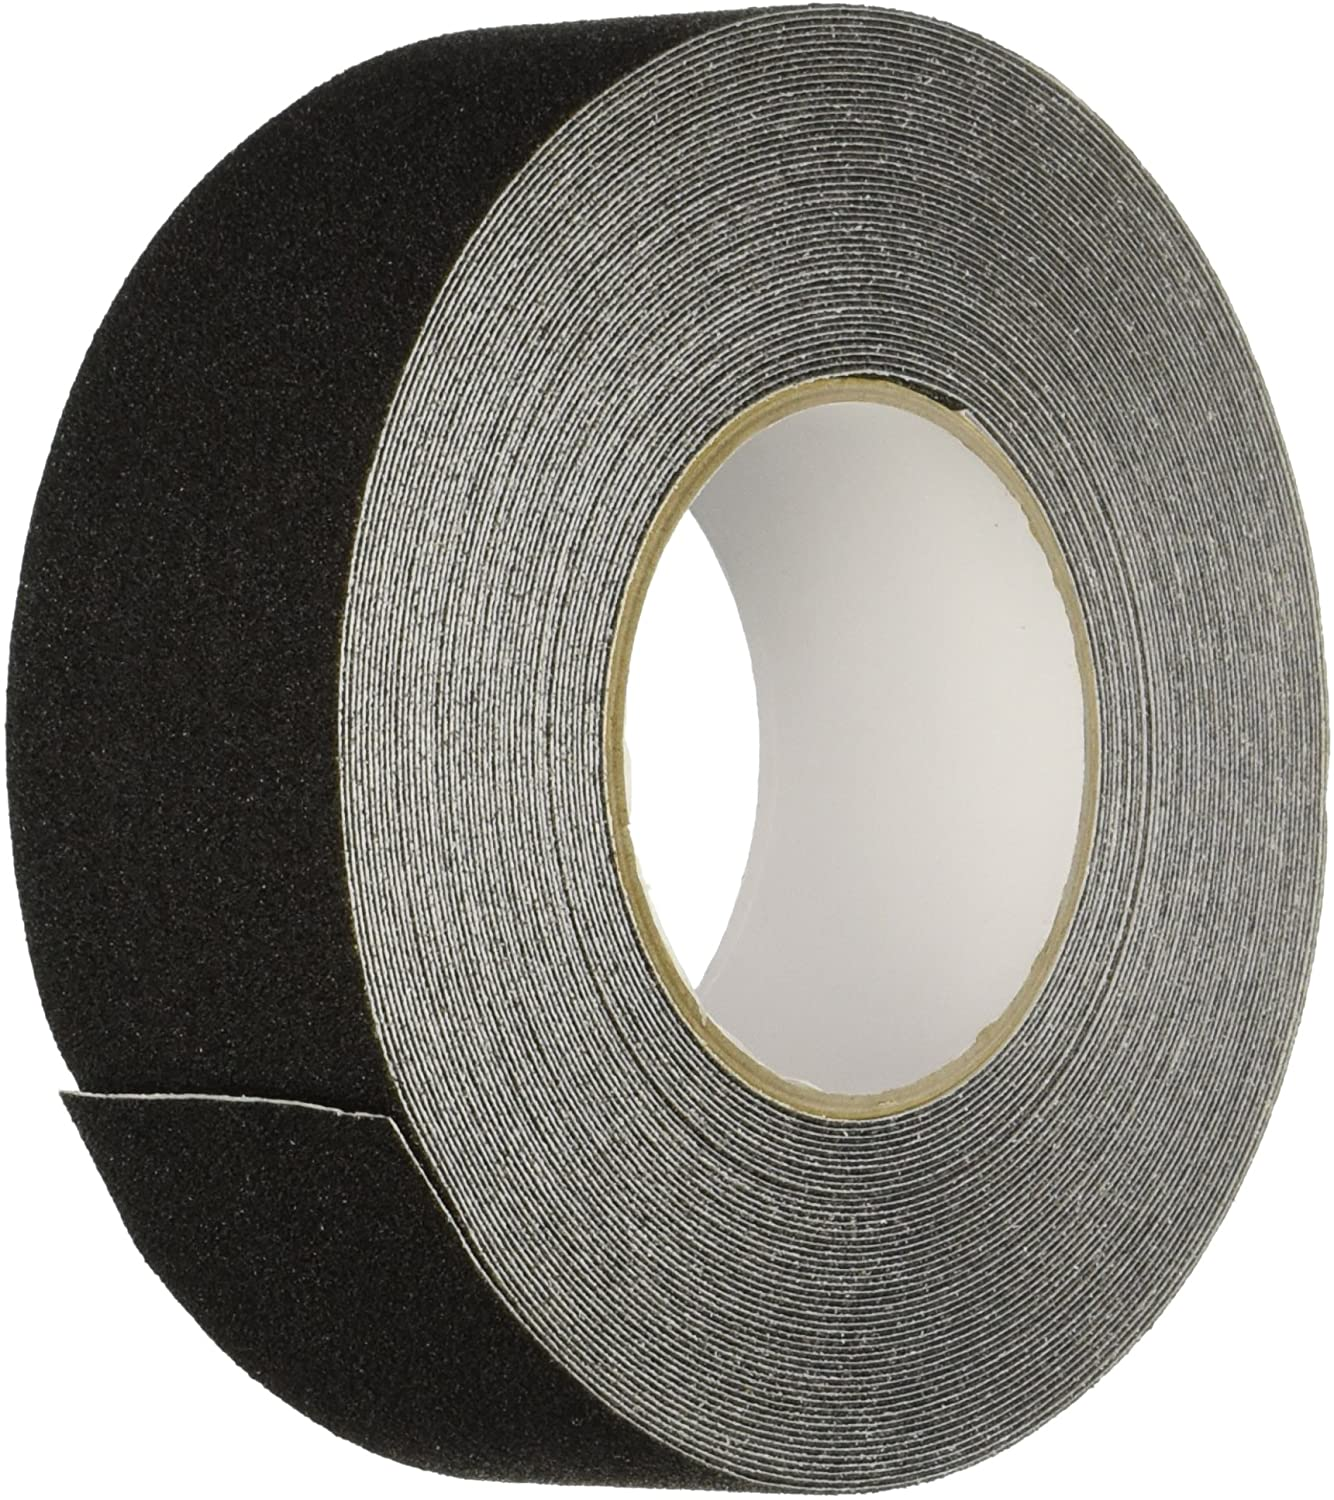 "2"" X 60' Foot Roll Heskins Safety Grip Anti Slip Tape Black NSTS2N"